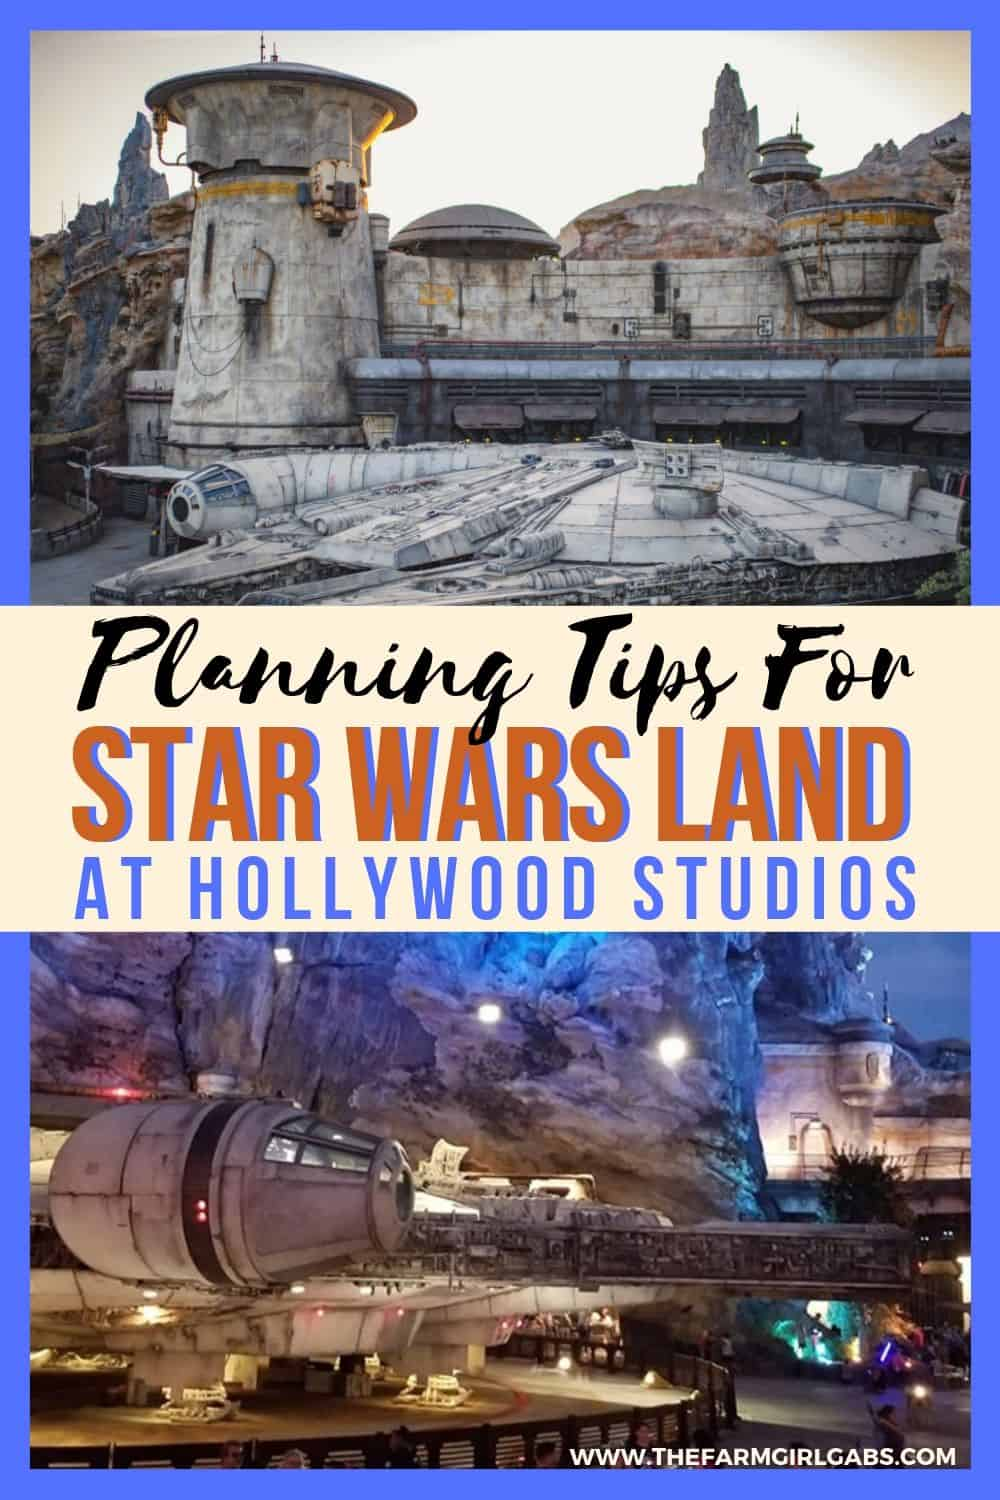 Punch it Chewie! Before you get into Disney vacation mode, here is some information about Galaxy's Edge to help in your Star Wars land at Hollywood Studios planning. These Disney tips will make your Disney vacation extra magical. #starwarsland #disneyworld #disneytips #galaxysedge